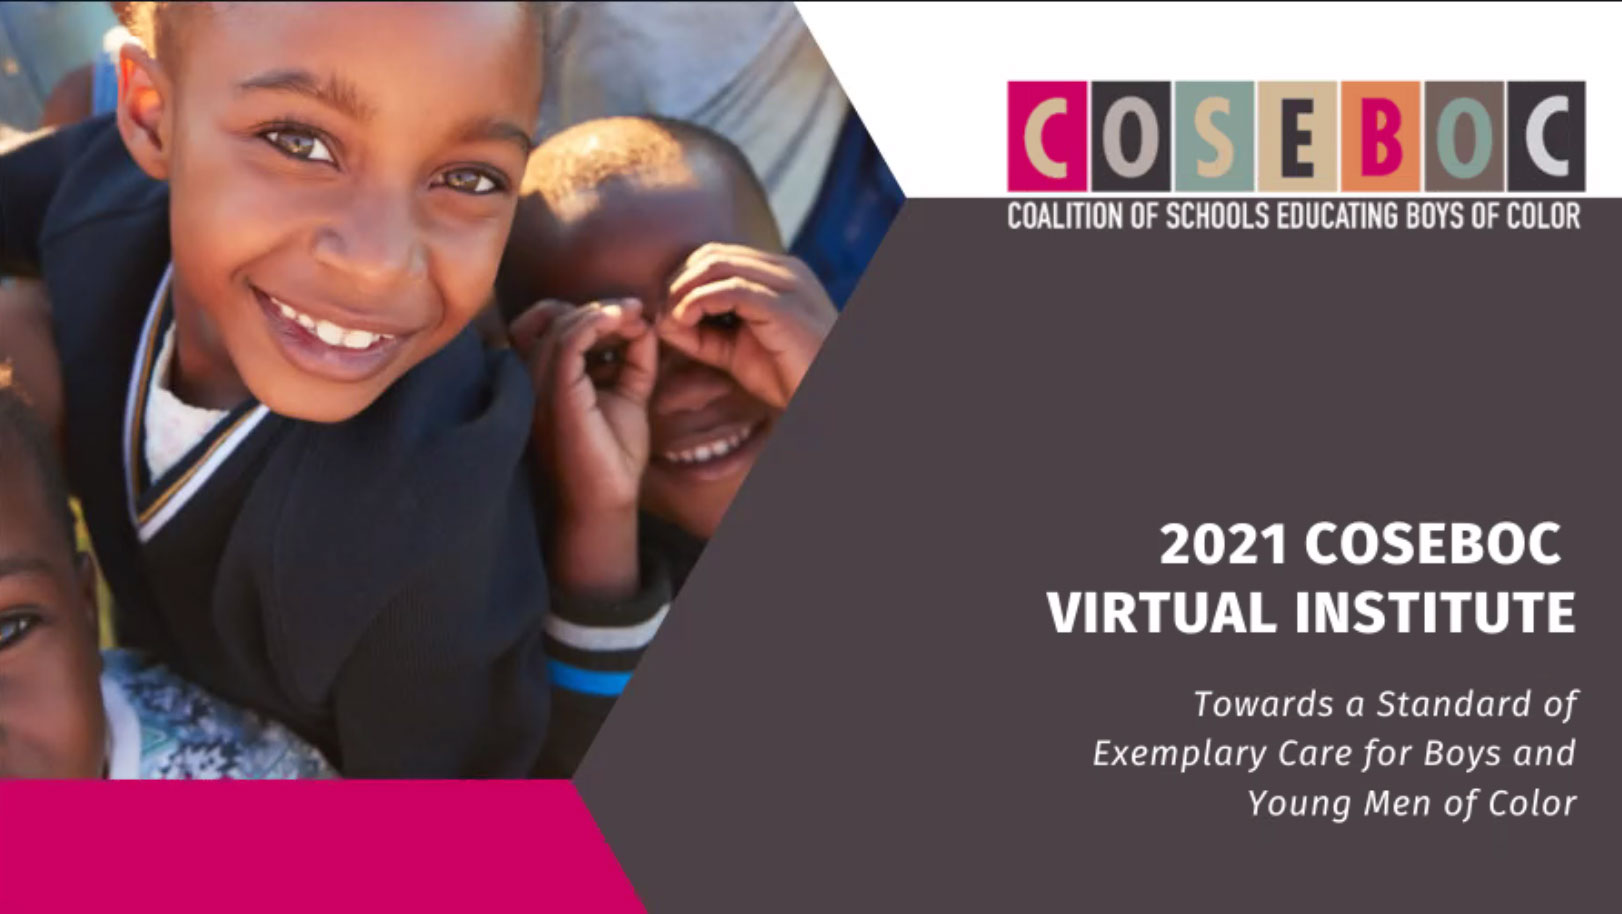 Session 1: COSEBOC Virtual Institute – The BERC Report and Beyond